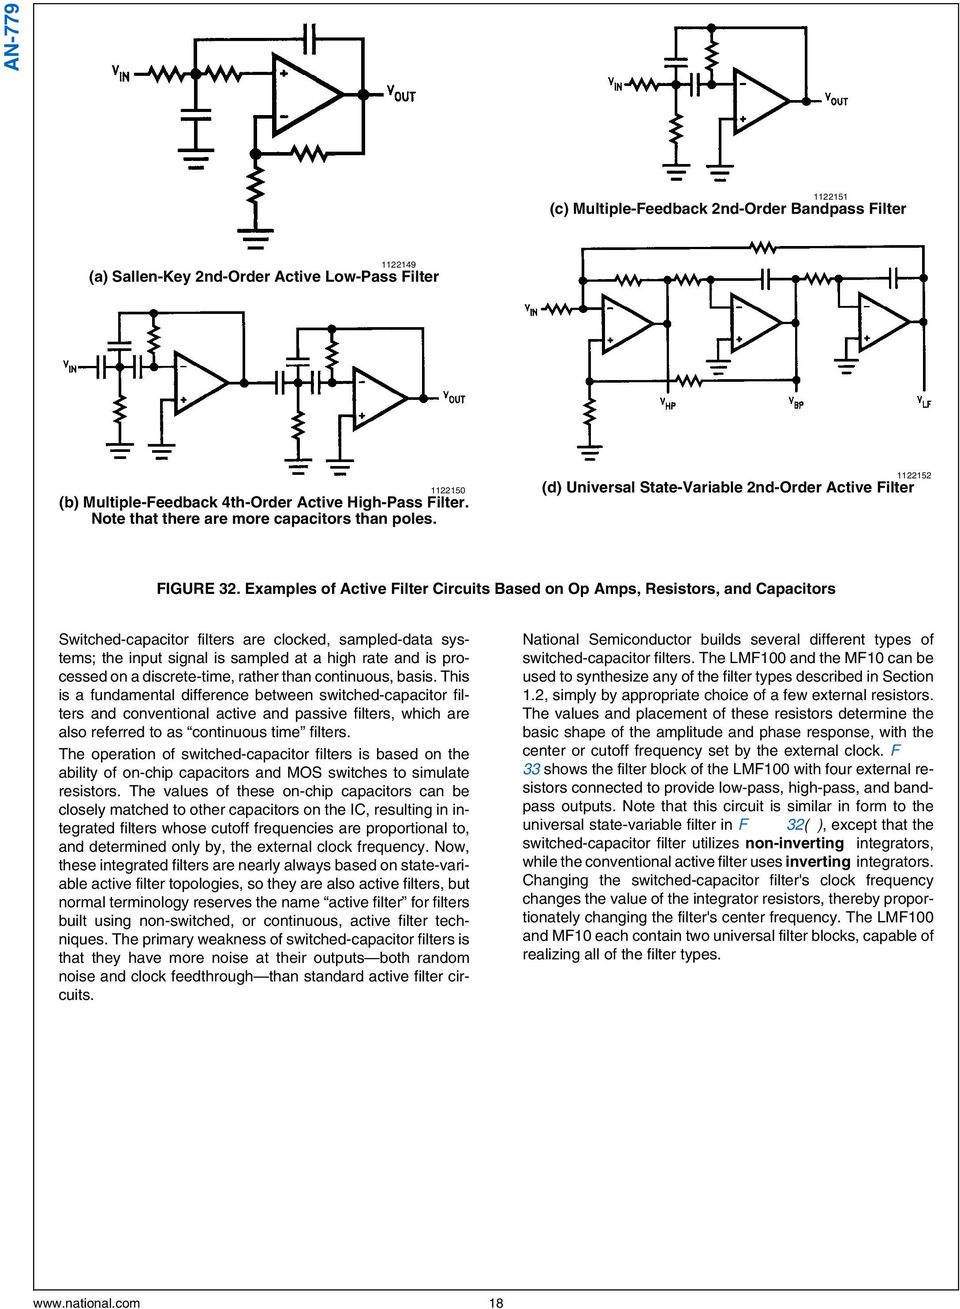 Lm833lmf100mf10 Application Note 779 A Basic Introduction To Values Of The Resistors And Capacitors For Our Thirdorder Circuit Examples Active Filter Circuits Based On Op Amps Switched